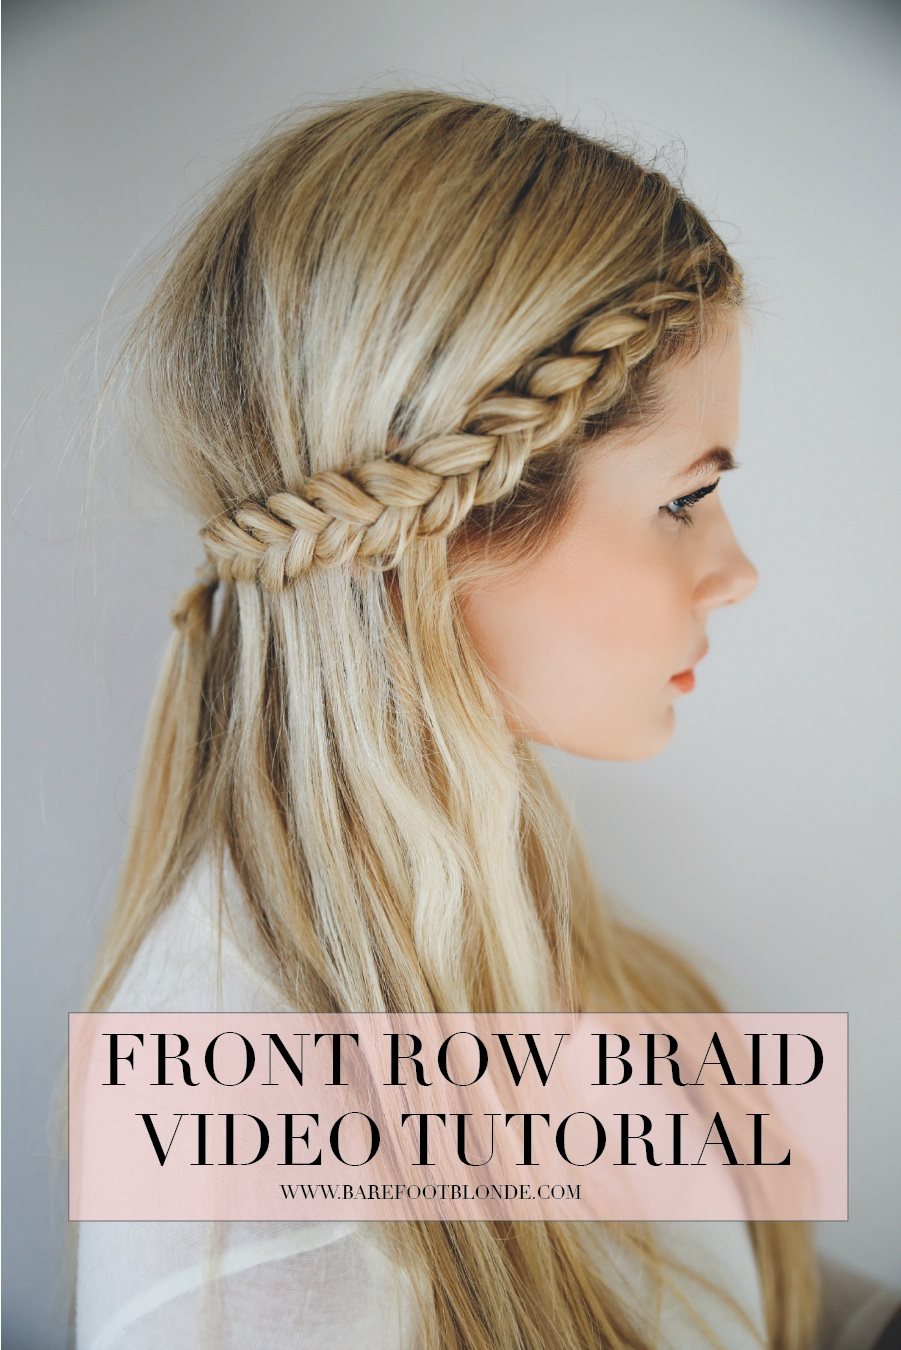 Front row braid tutorial